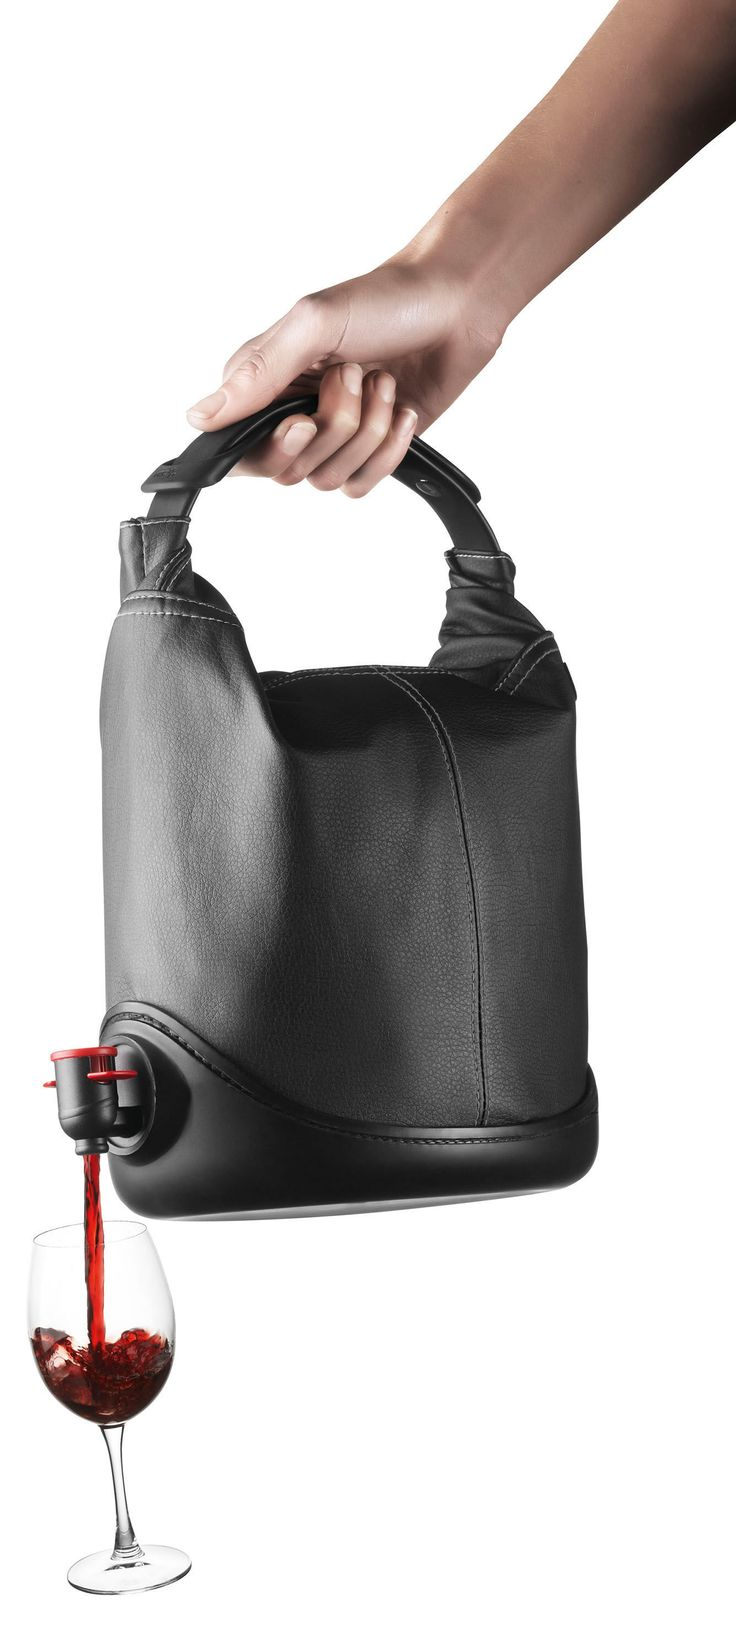 I have needed this my whole entire life...omg...Portable Wine Purse ♥ Wine + Purse = L.O.V.E.!!!